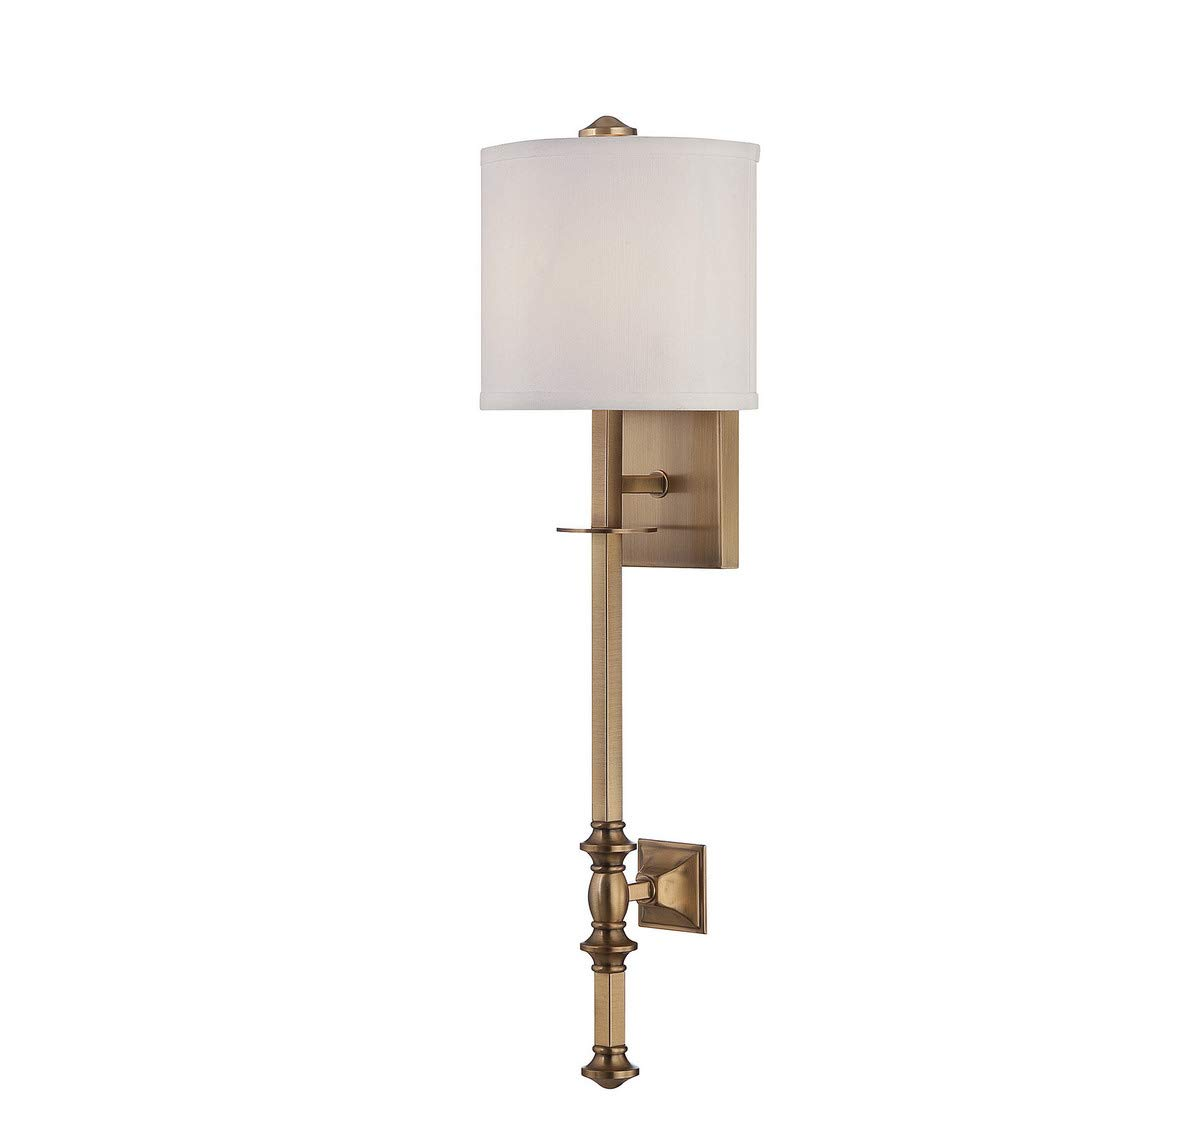 Savoy House 9-7140-1-322 Devon 1-Light Wall Sconce with White Fabric Shade, Warm Brass Finish